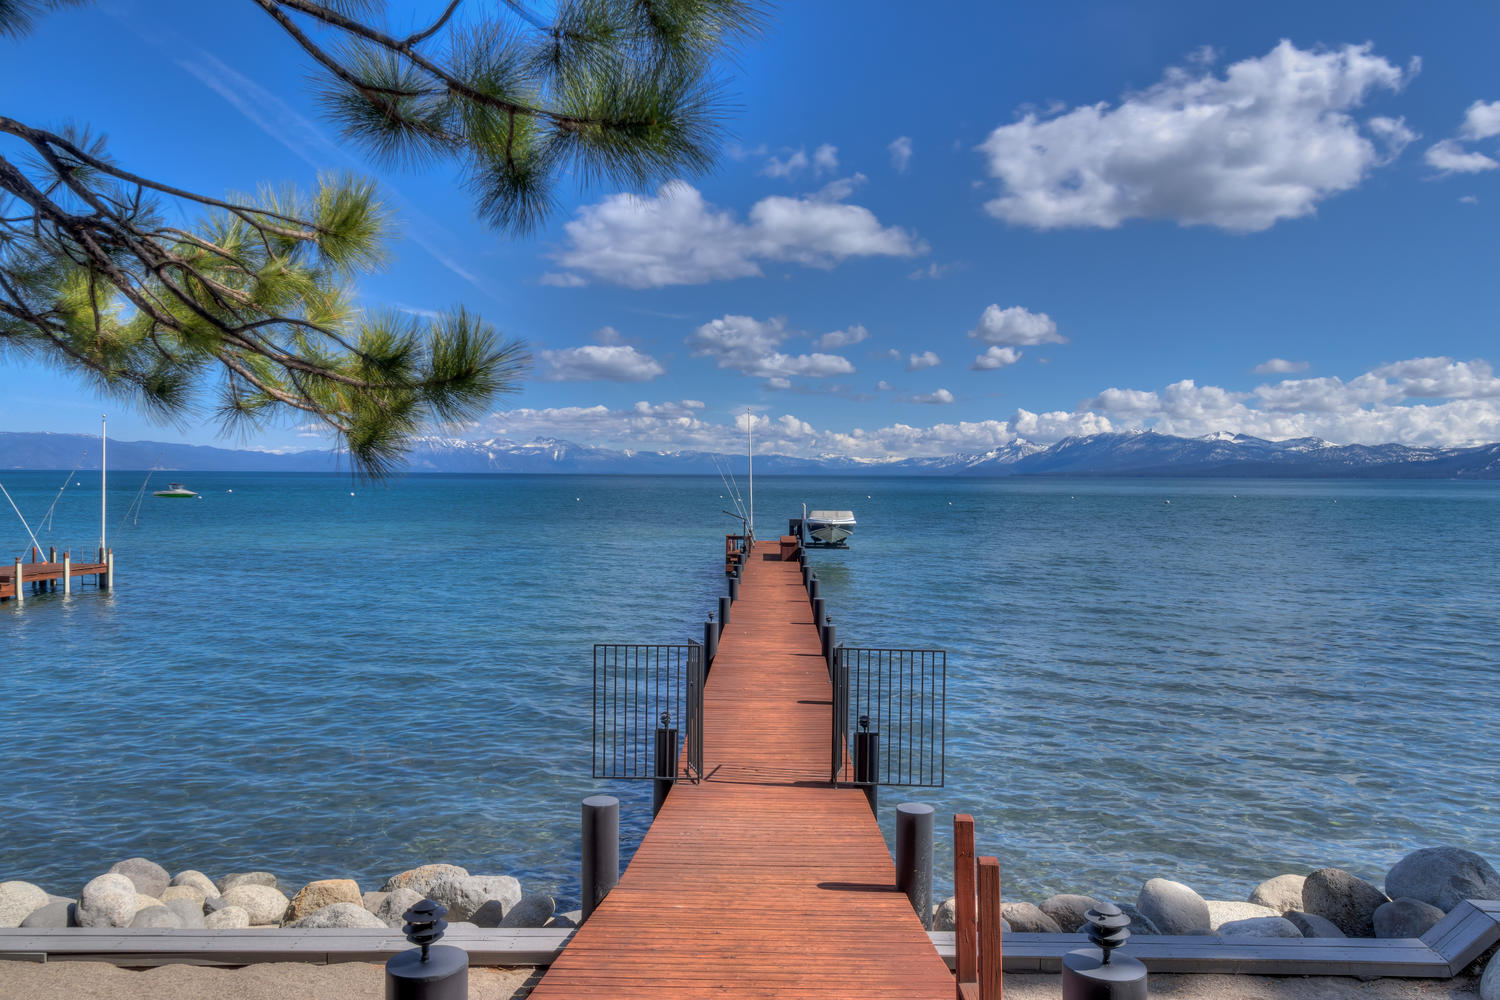 Whispering Pines lakefront home on Lake Tahoe